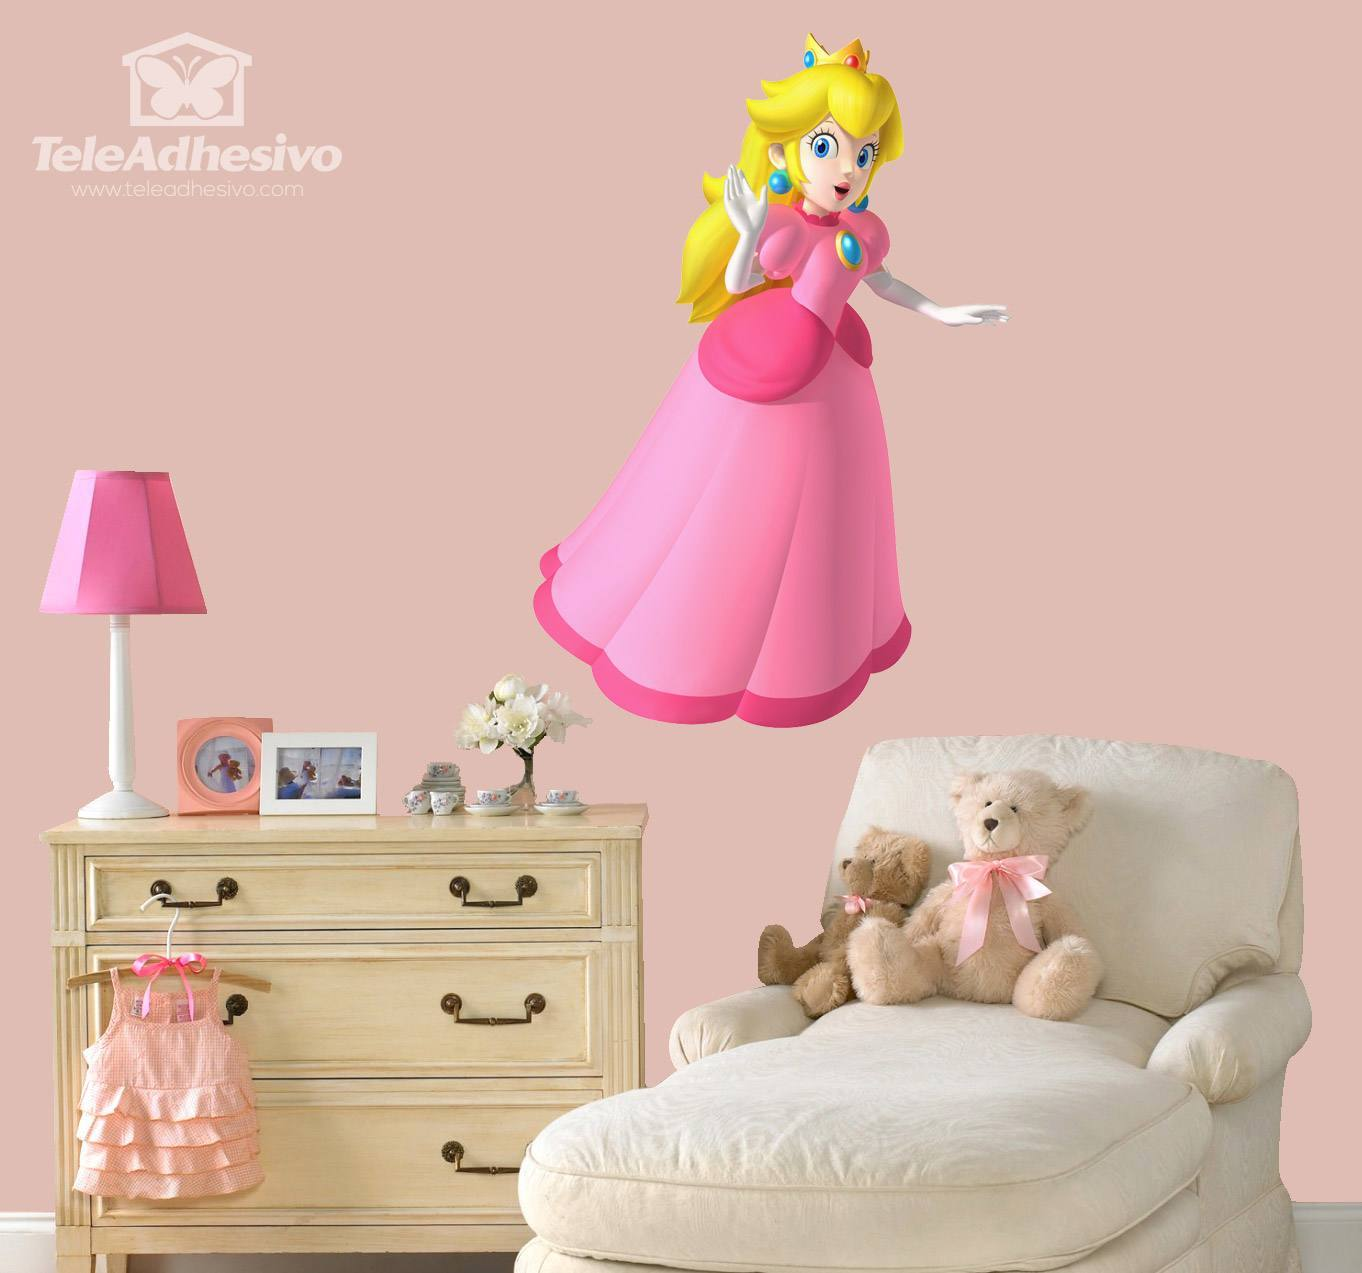 Kinderzimmer Wandtattoo: Princess Peach